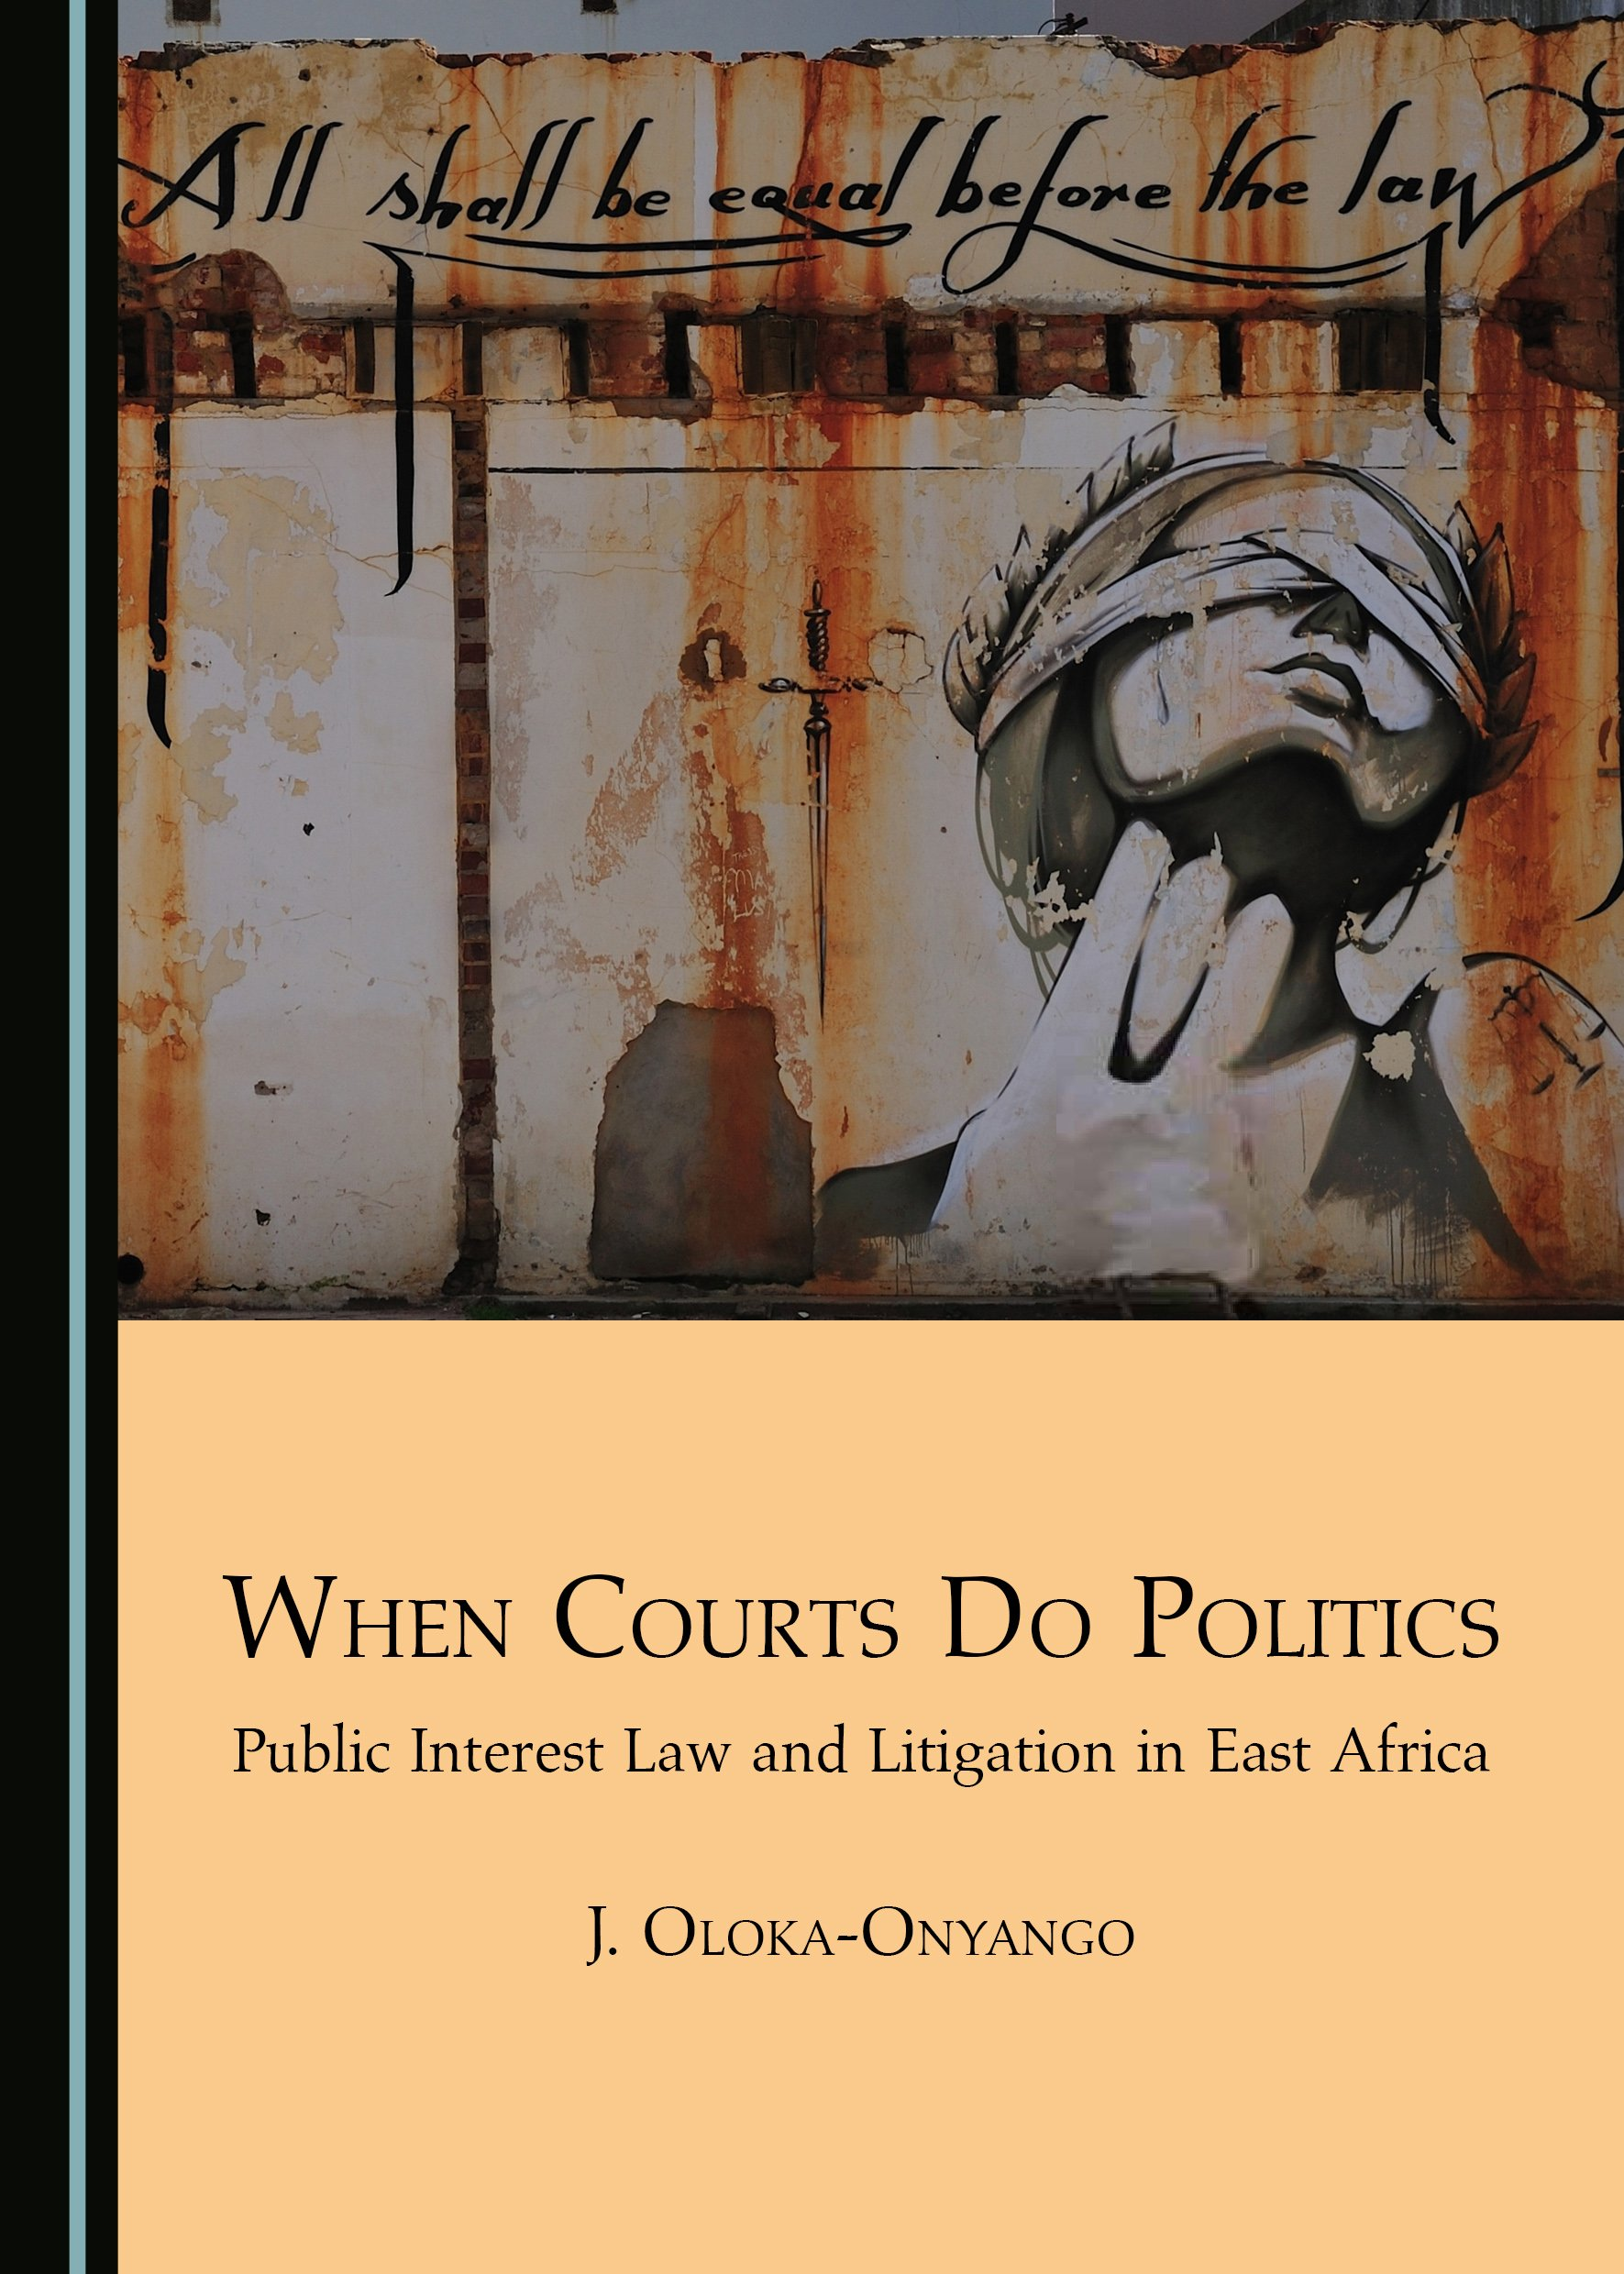 When Courts Do Politics: Public Interest Law and Litigation in East Africa